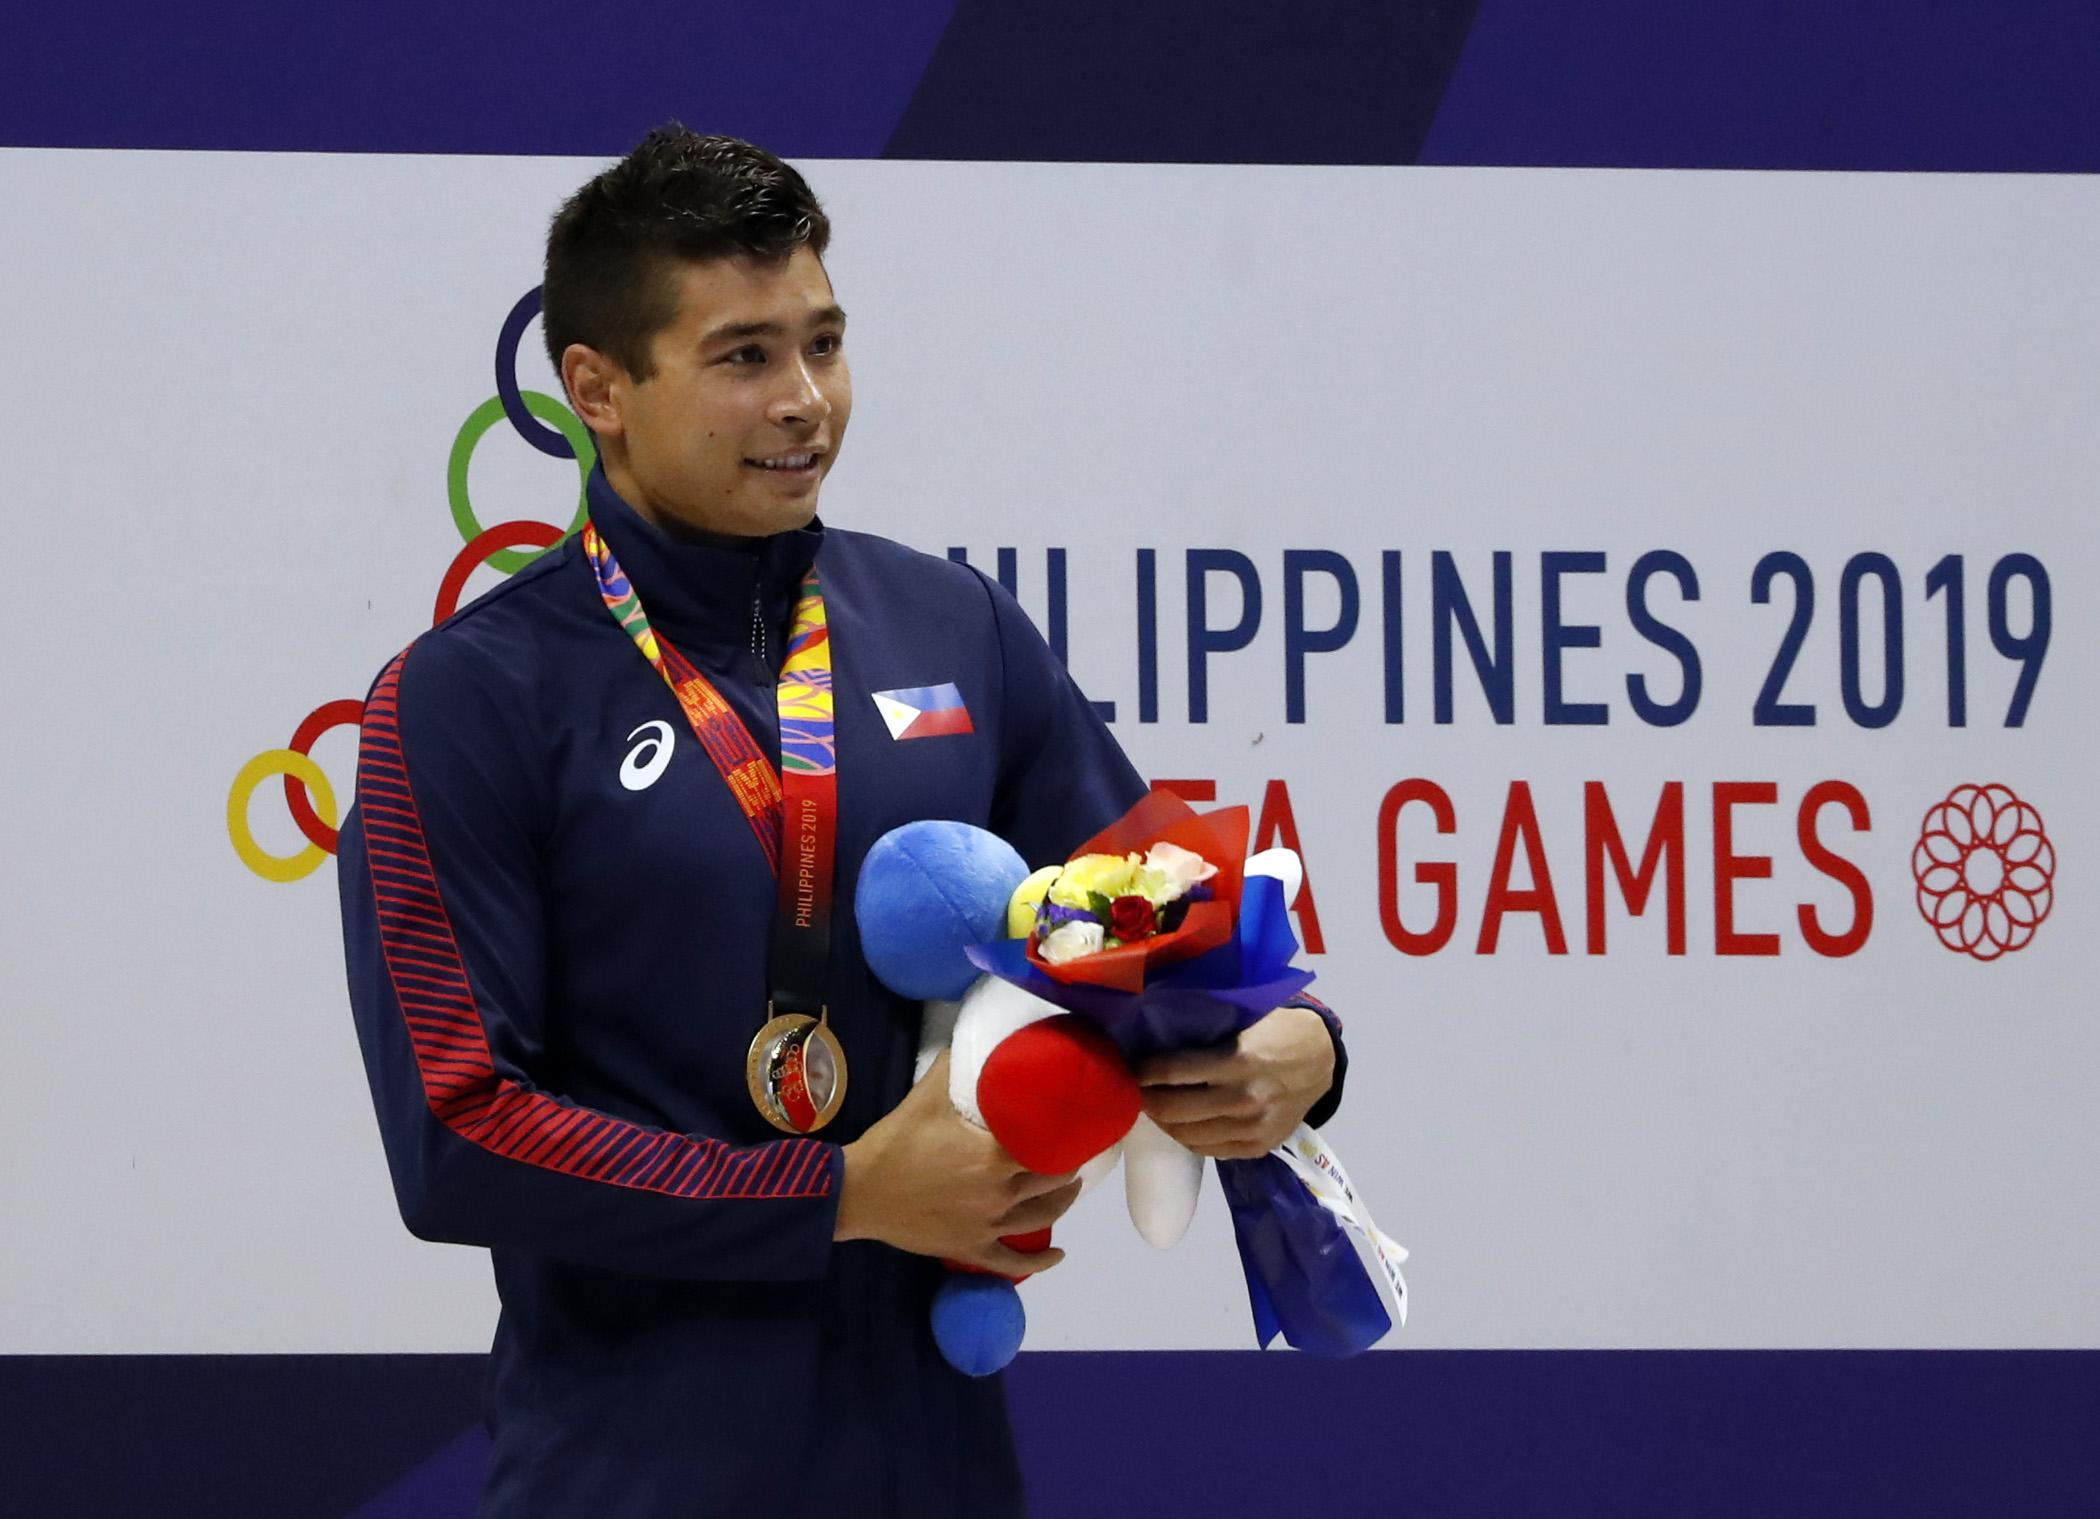 Drought ends as Philippine medal rush continues on Day 4 - GMA News